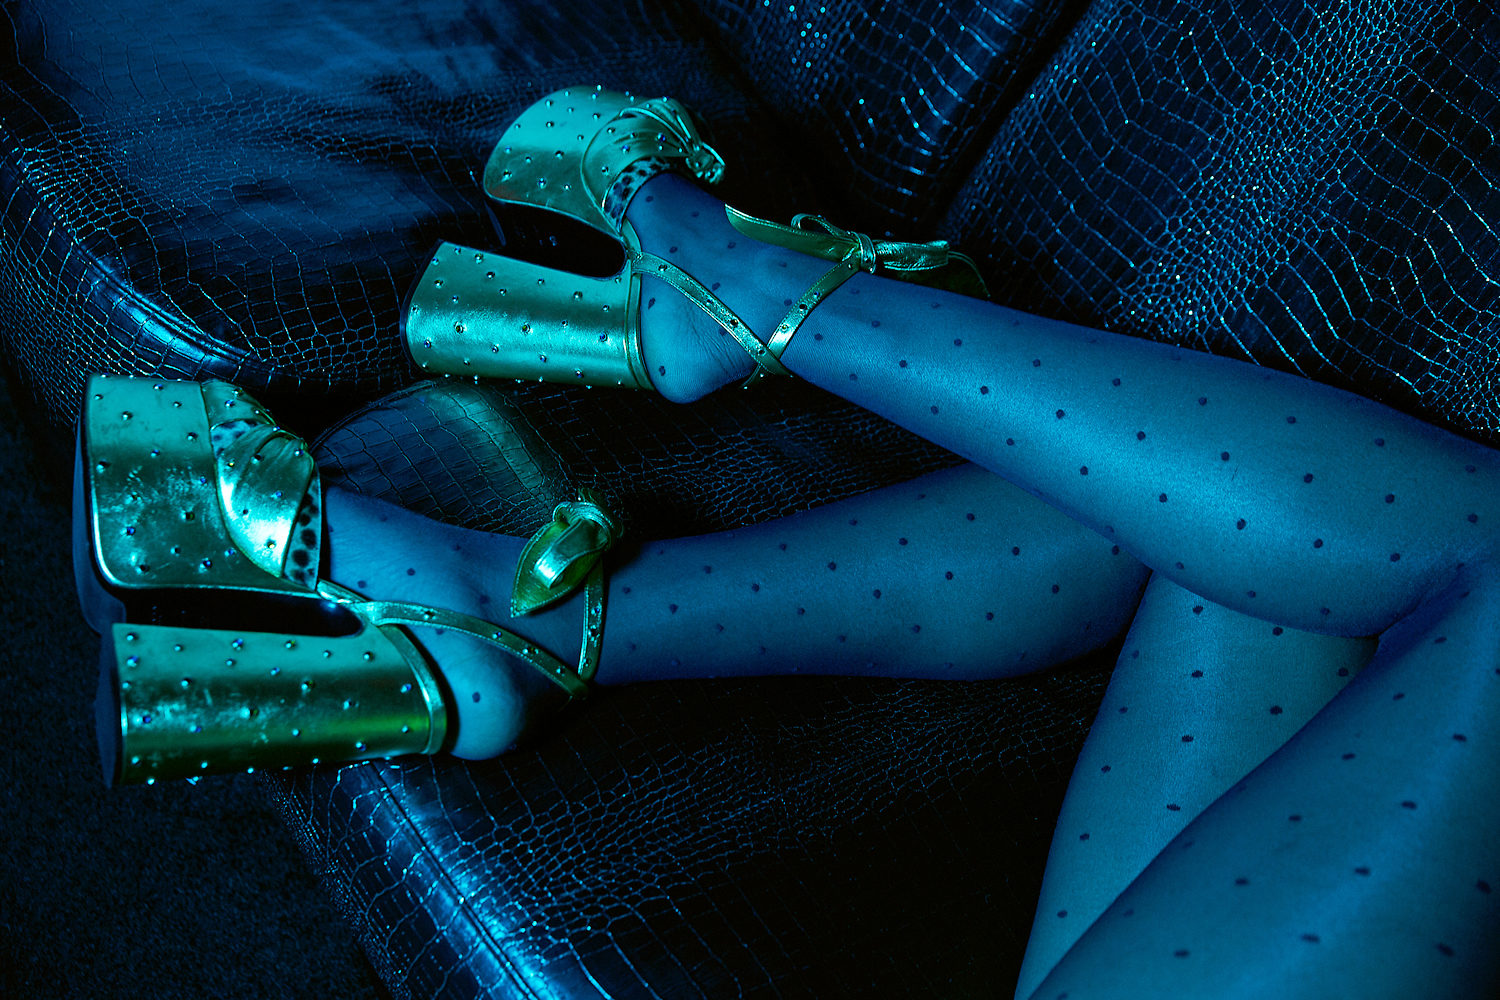 SHOES-ON-SOFA-YSL-DISCO